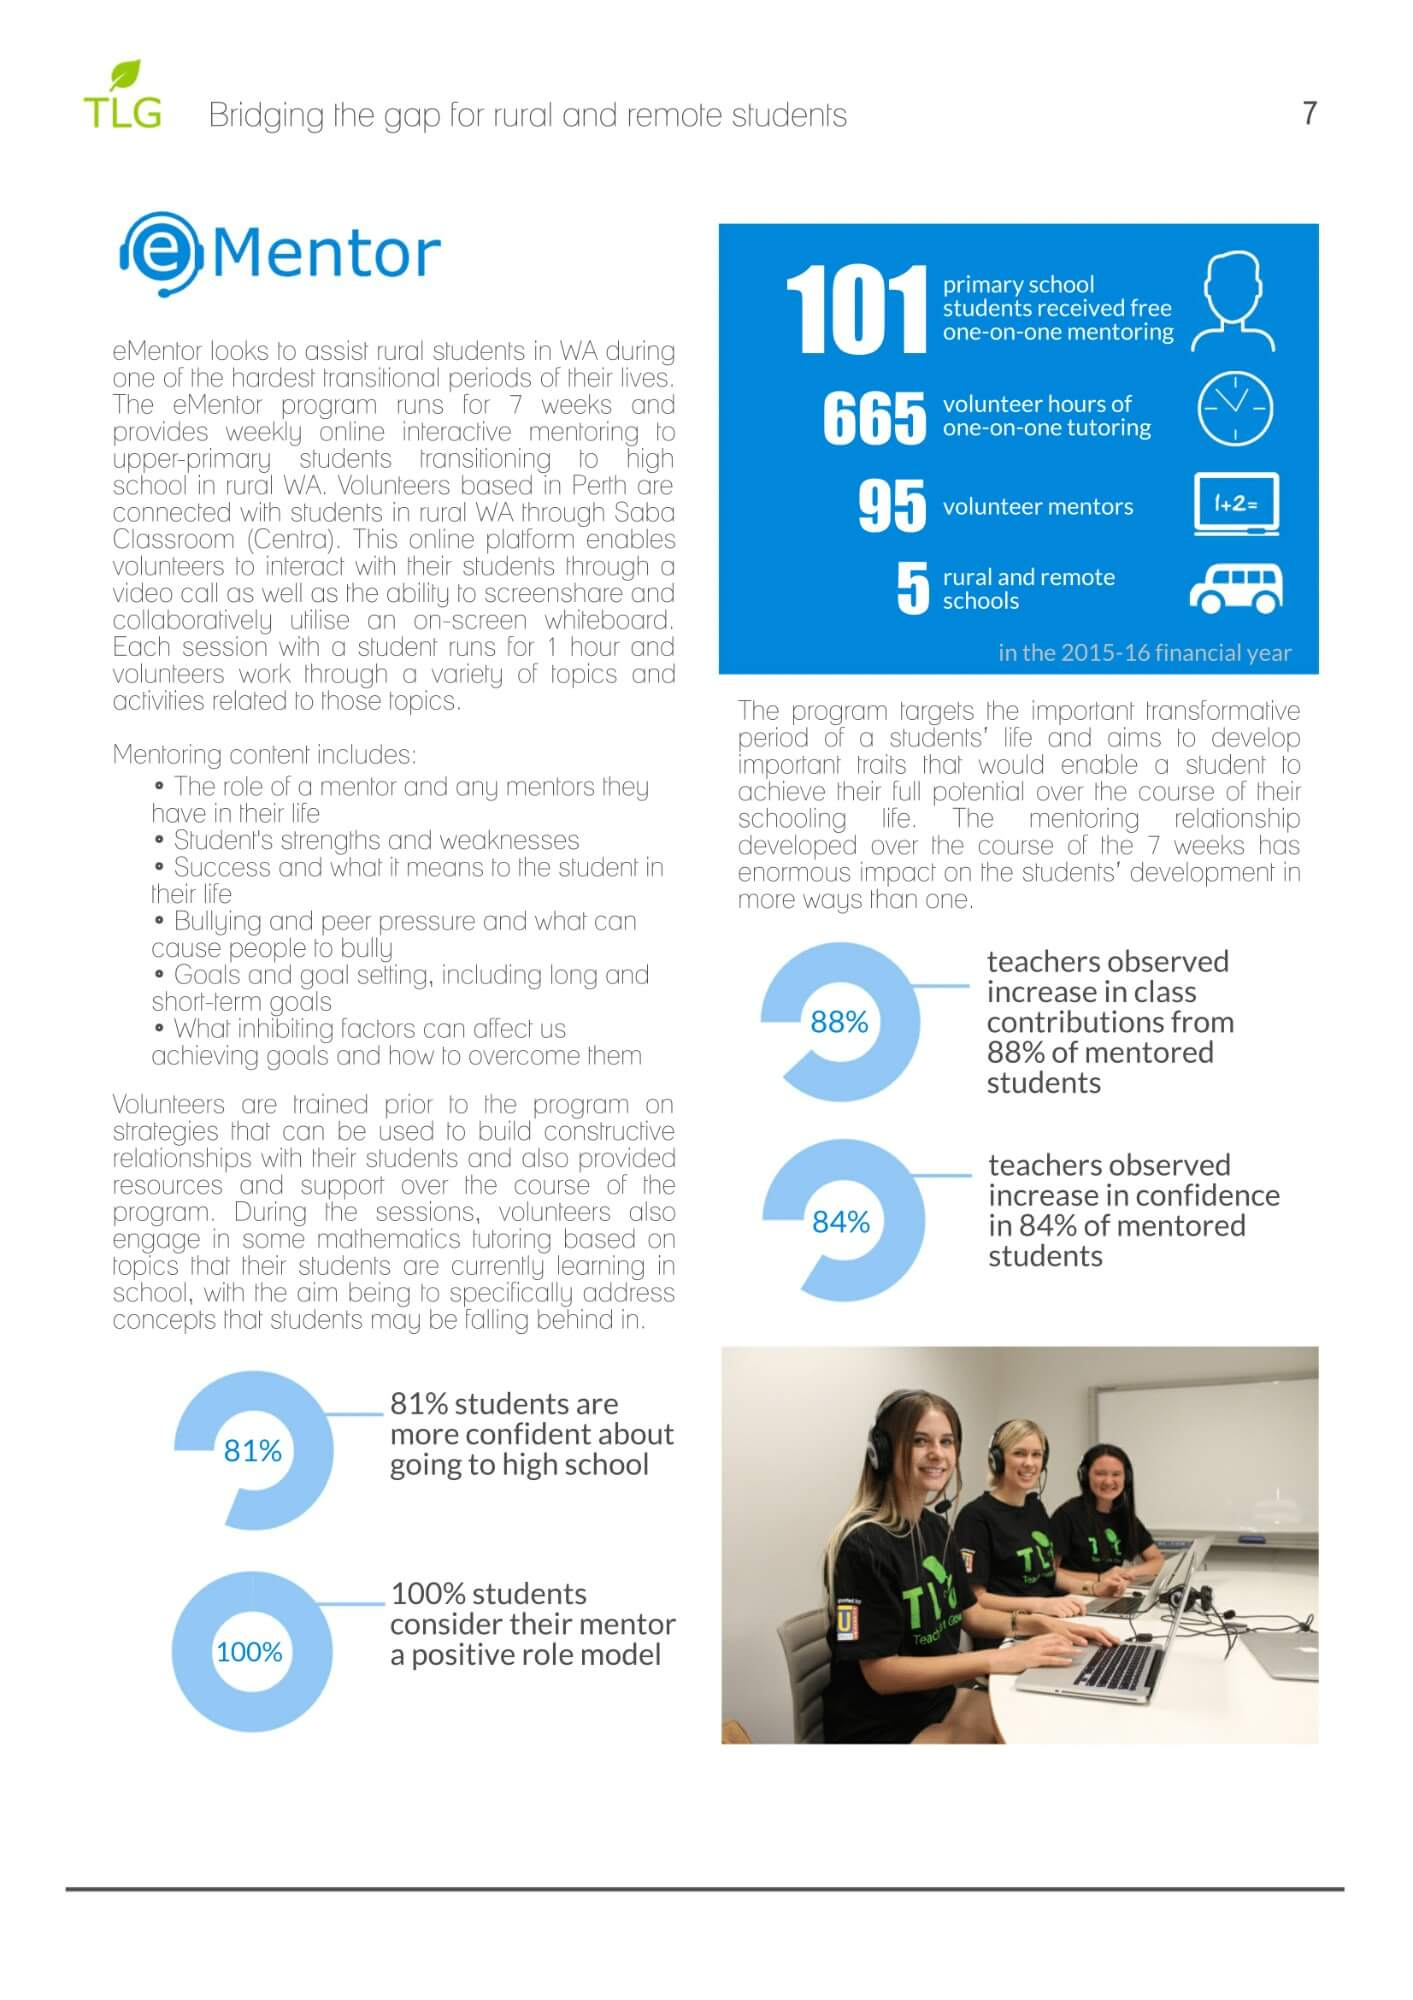 tlg-annual-report-FY15-07.jpg